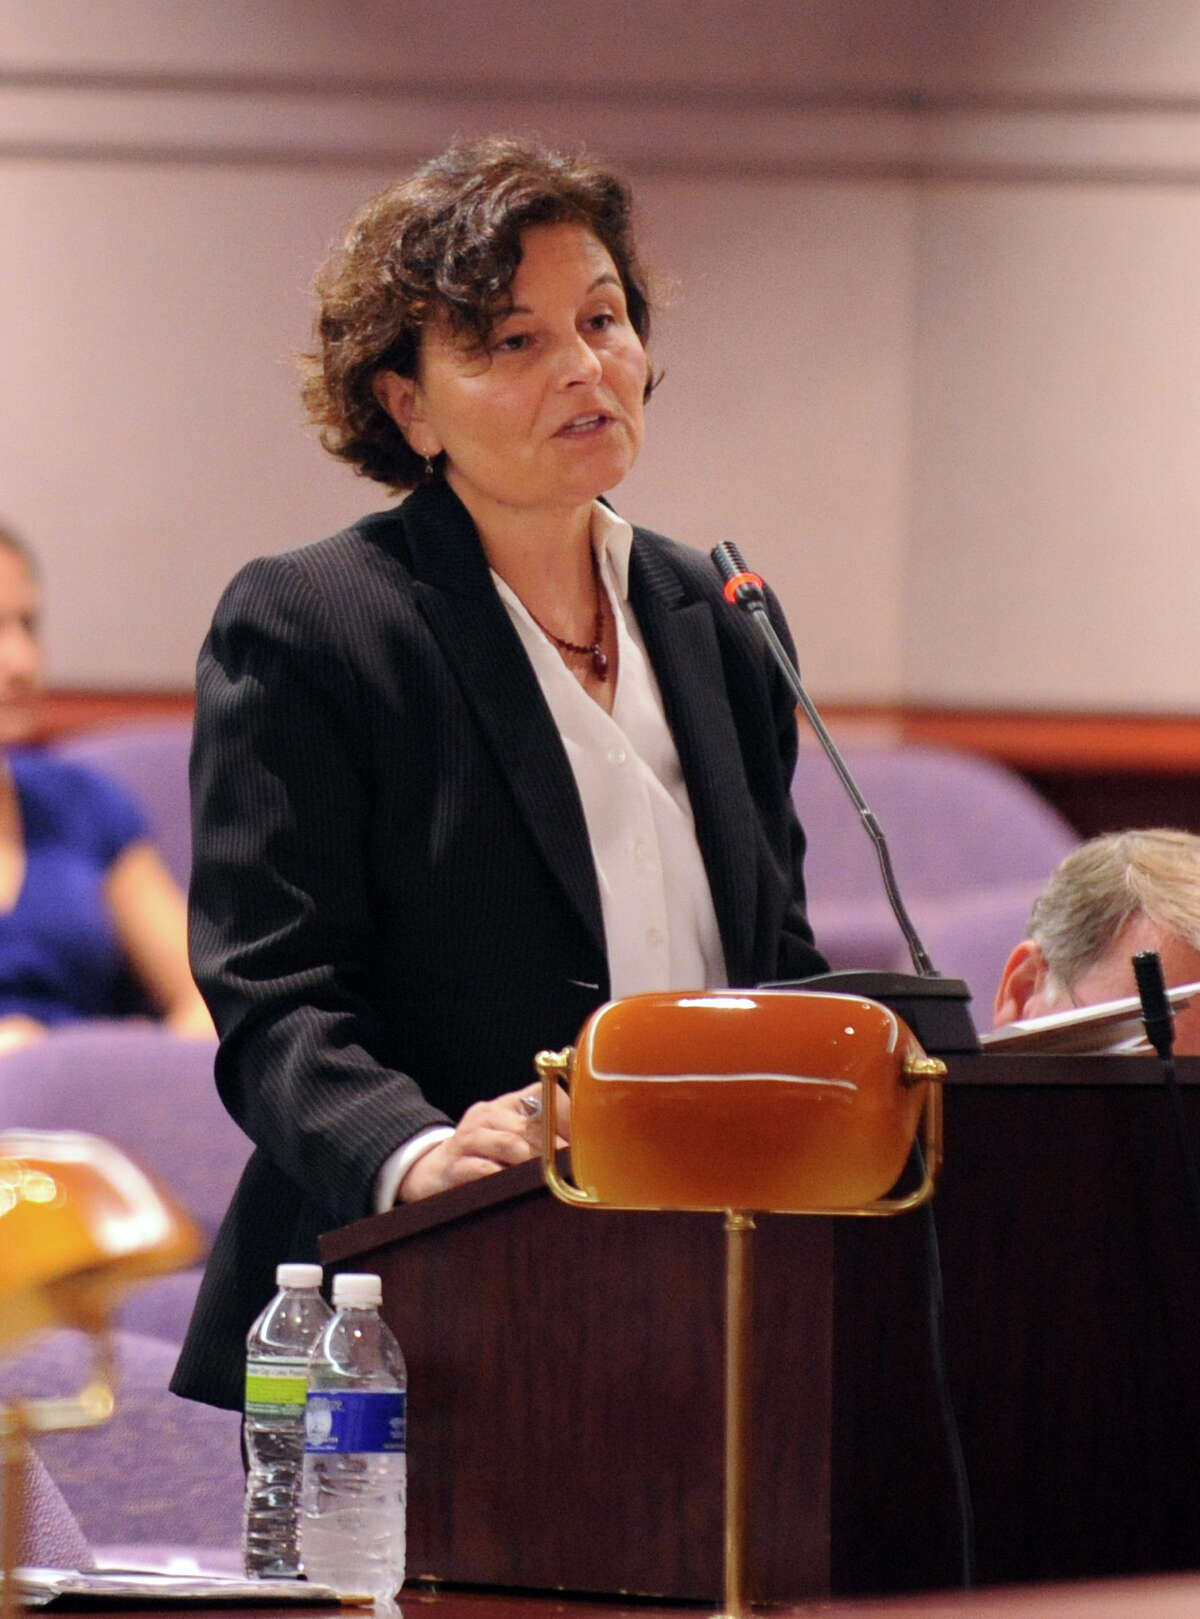 Assistant Attorney General Maite Barainca speaks during a hearing before the state Claims Commissioner Friday, August 10, 2012 at the Legislative Office Building in Hartford, Conn. Charla Nash is seeking permission from the commissioner to sue the state for $150 million in damages from a 2009 chimpanzee attack.